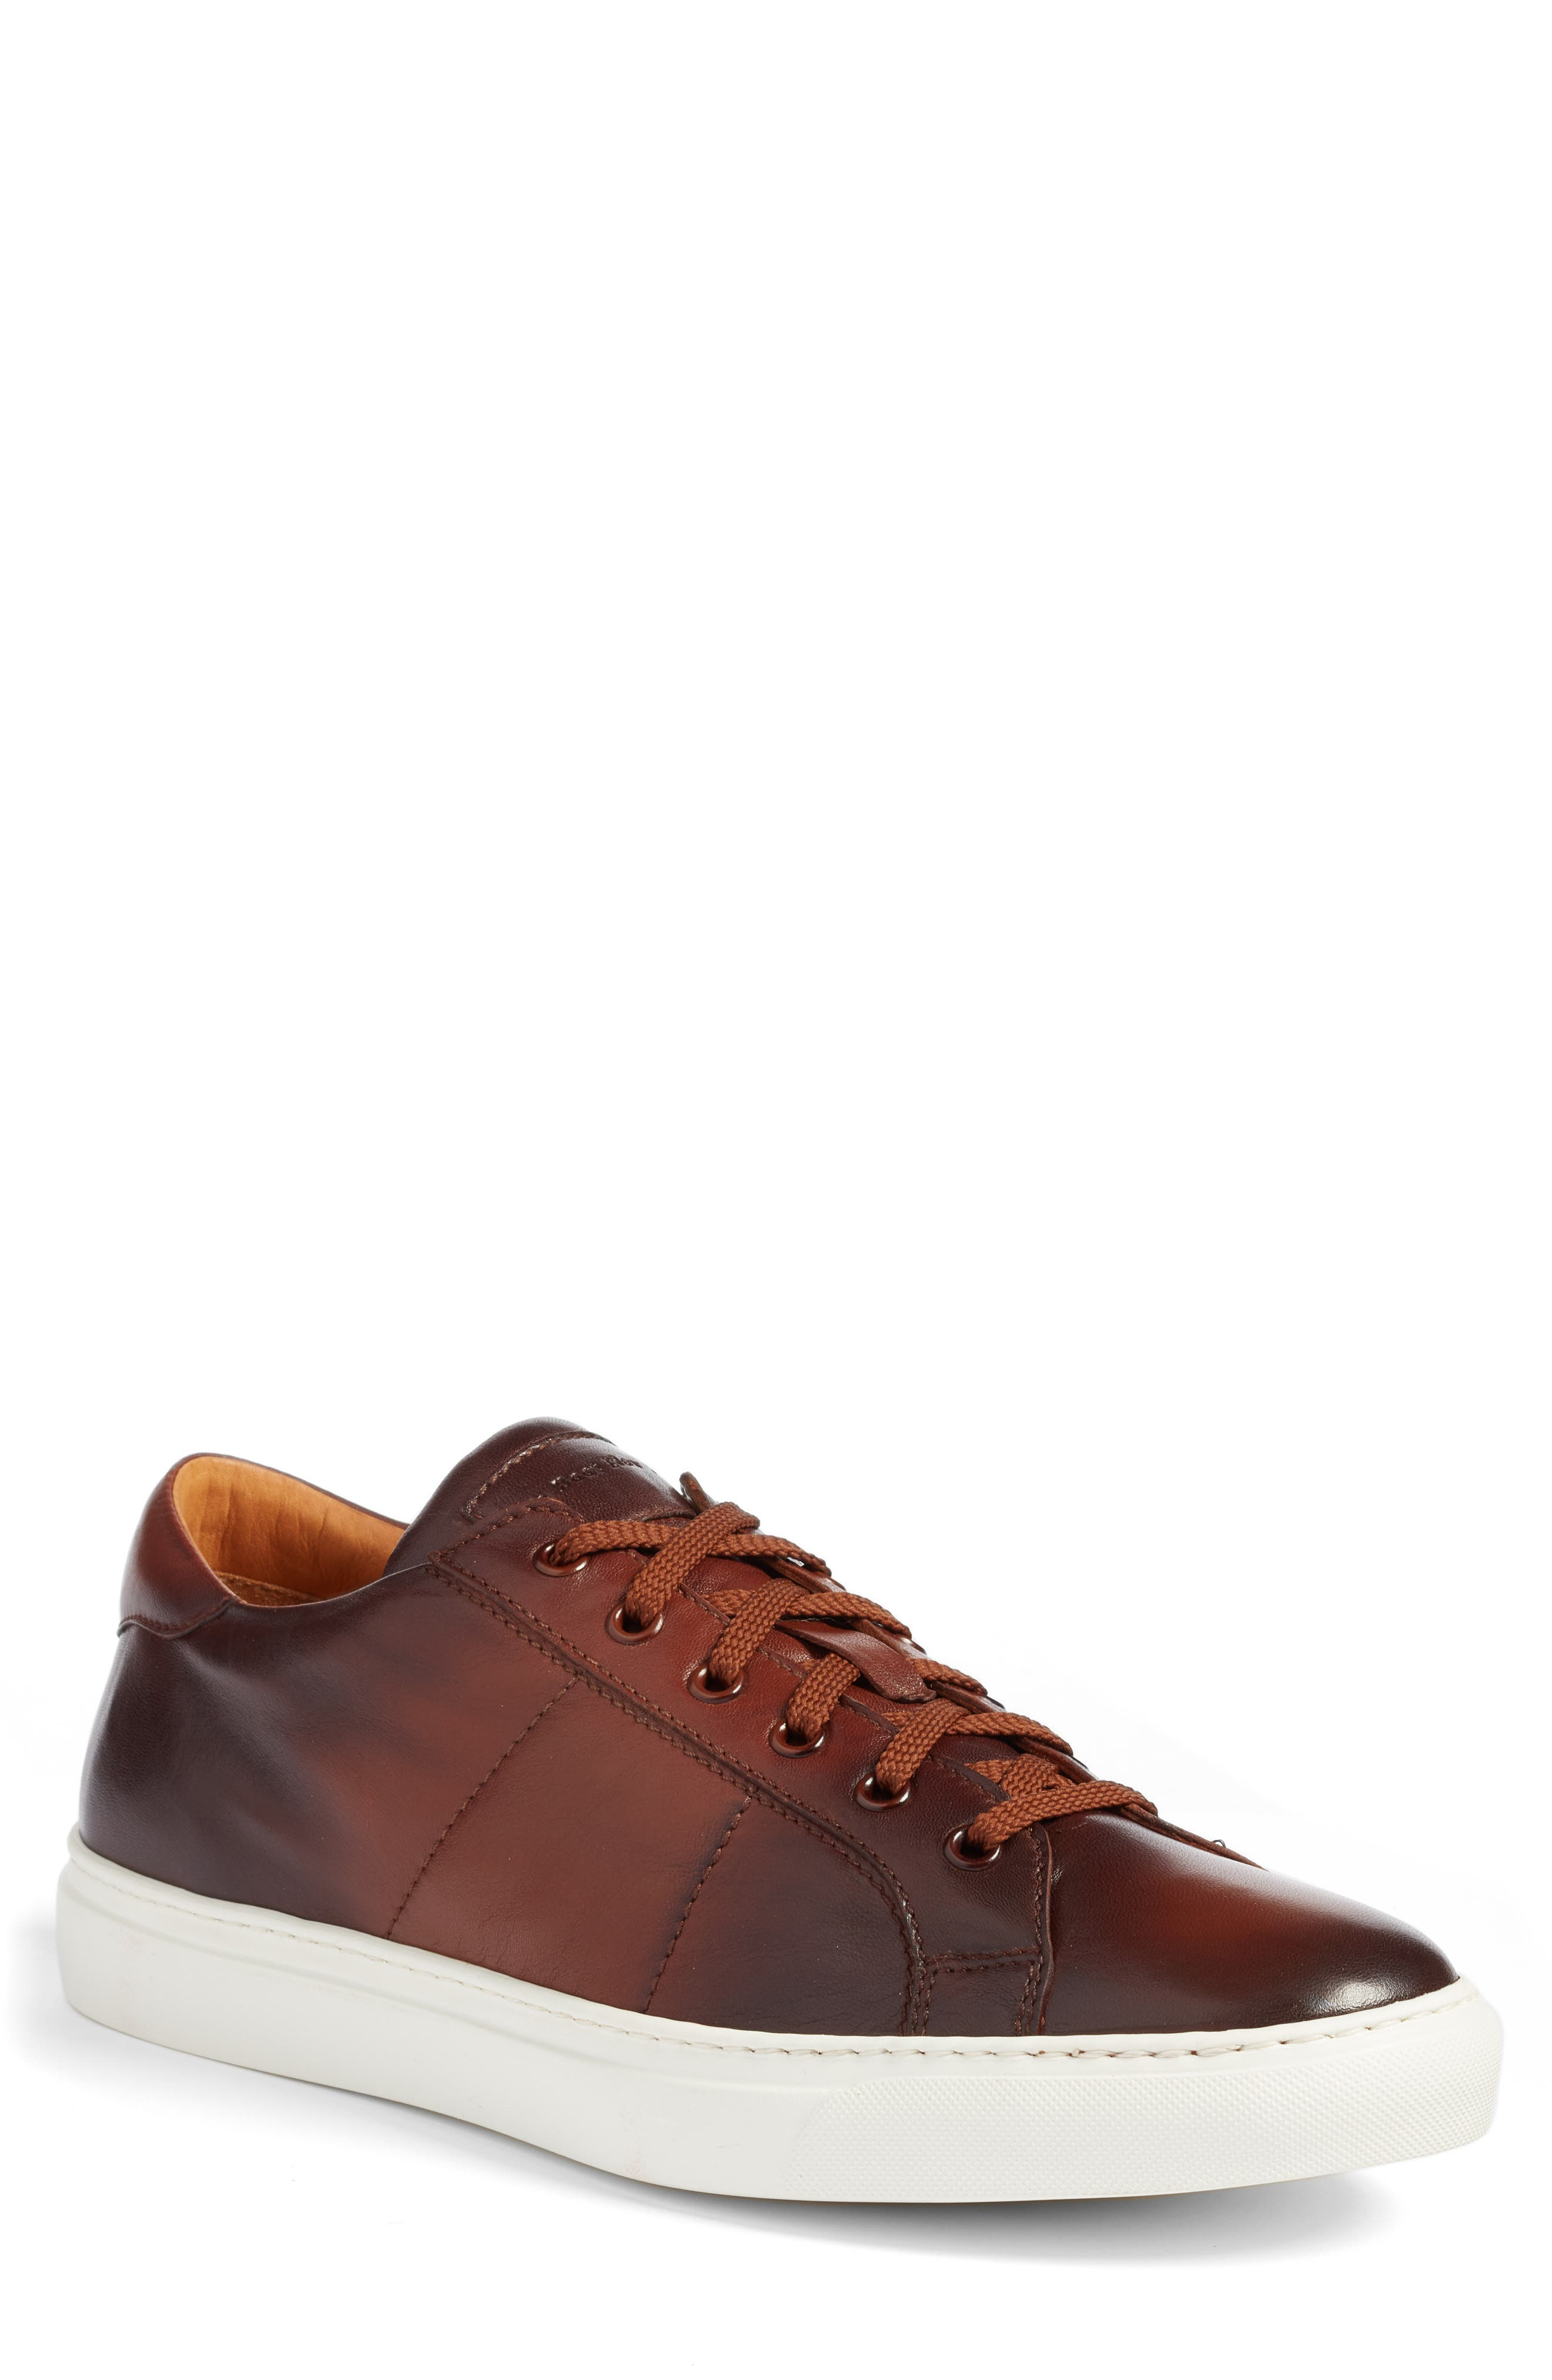 TO BOOT NEW YORK Men'S Colton Leather Lace-Up Sneakers in Brown Leather